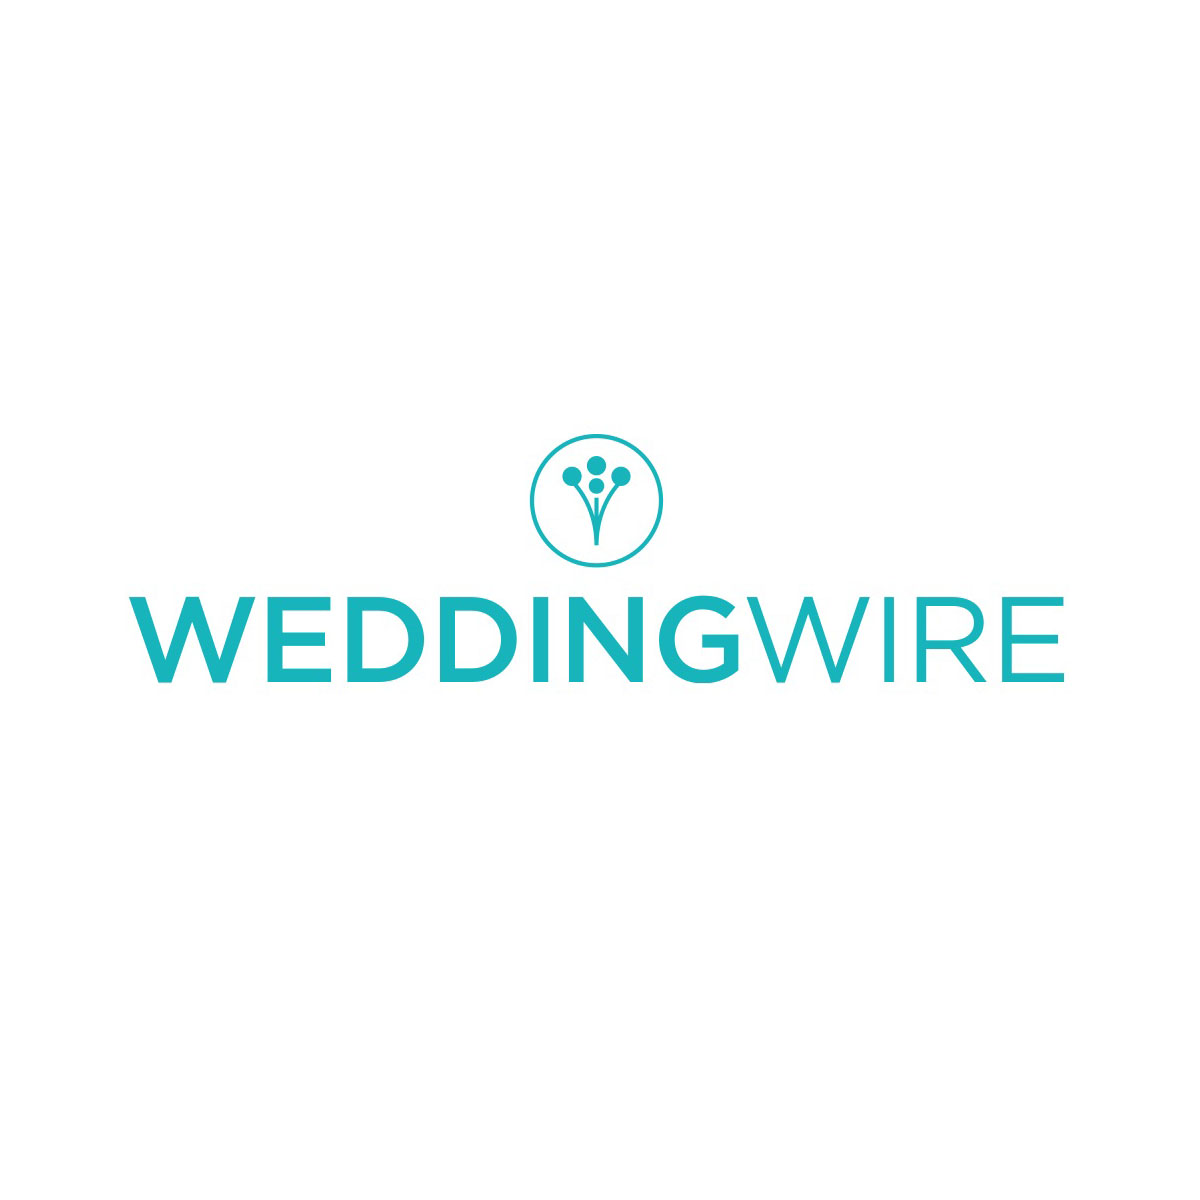 Wedding Wire.jpg